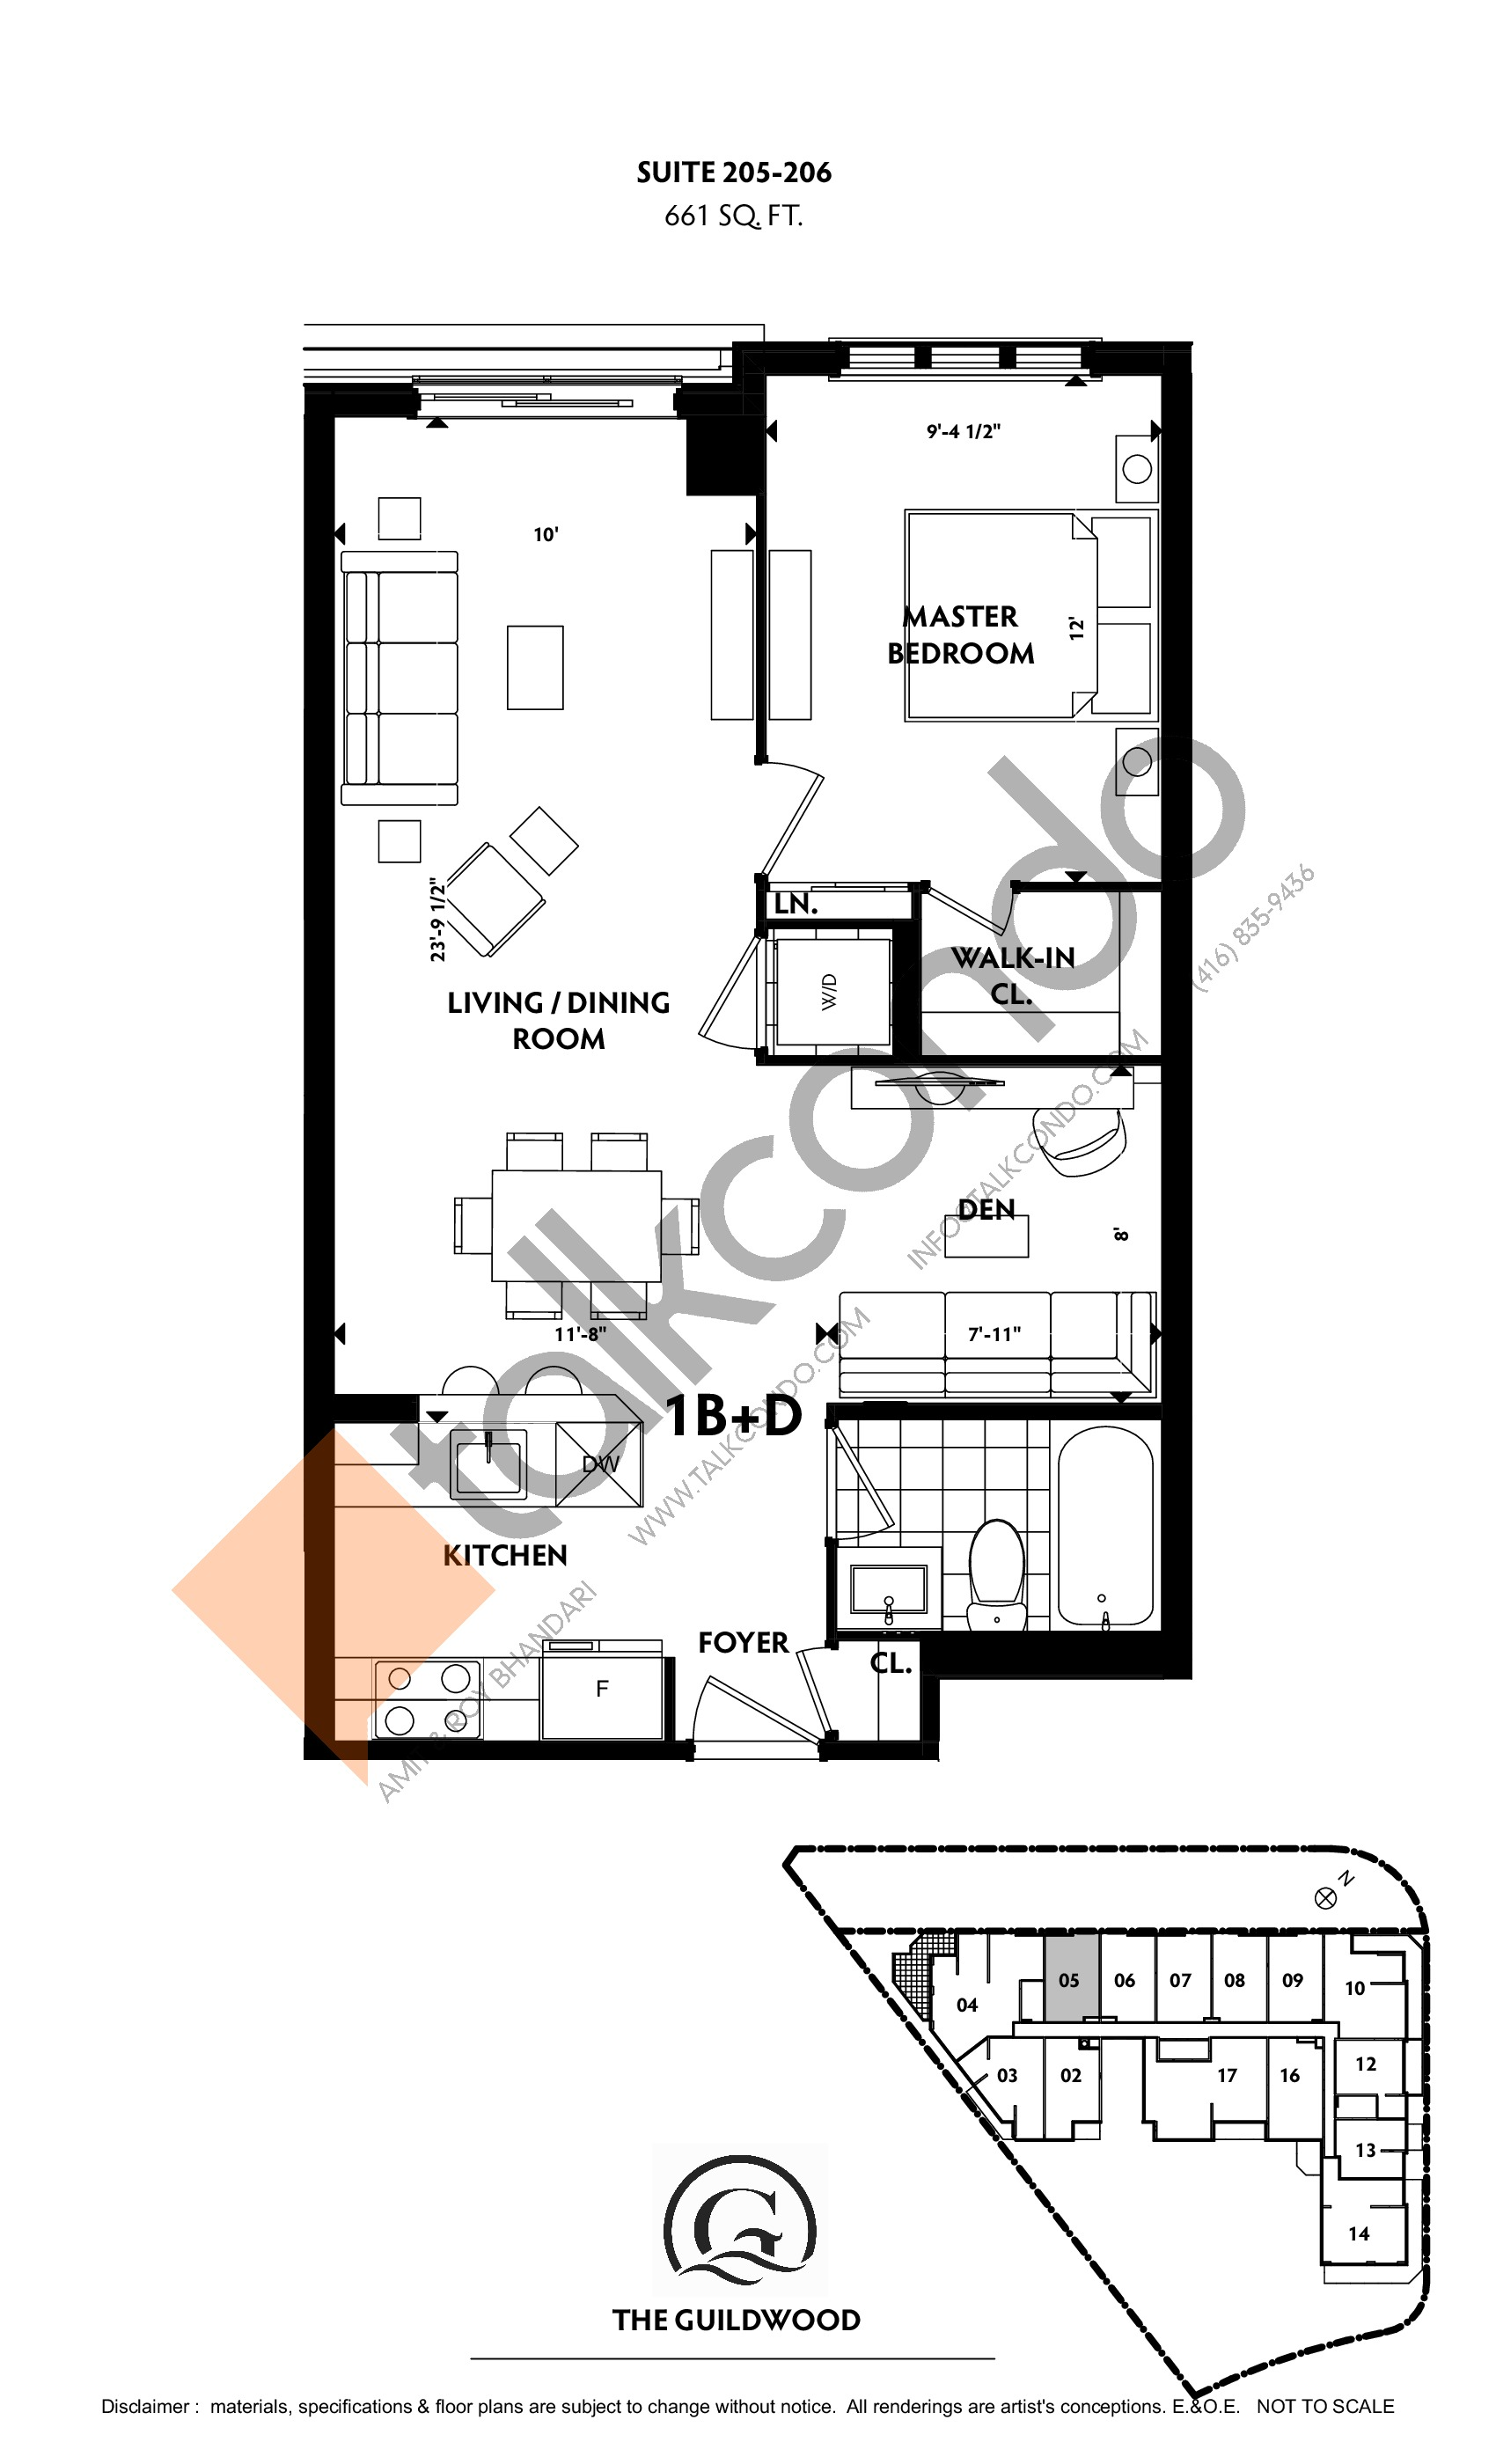 Suite 205, 206 Floor Plan at Guildwood Condos - 661 sq.ft